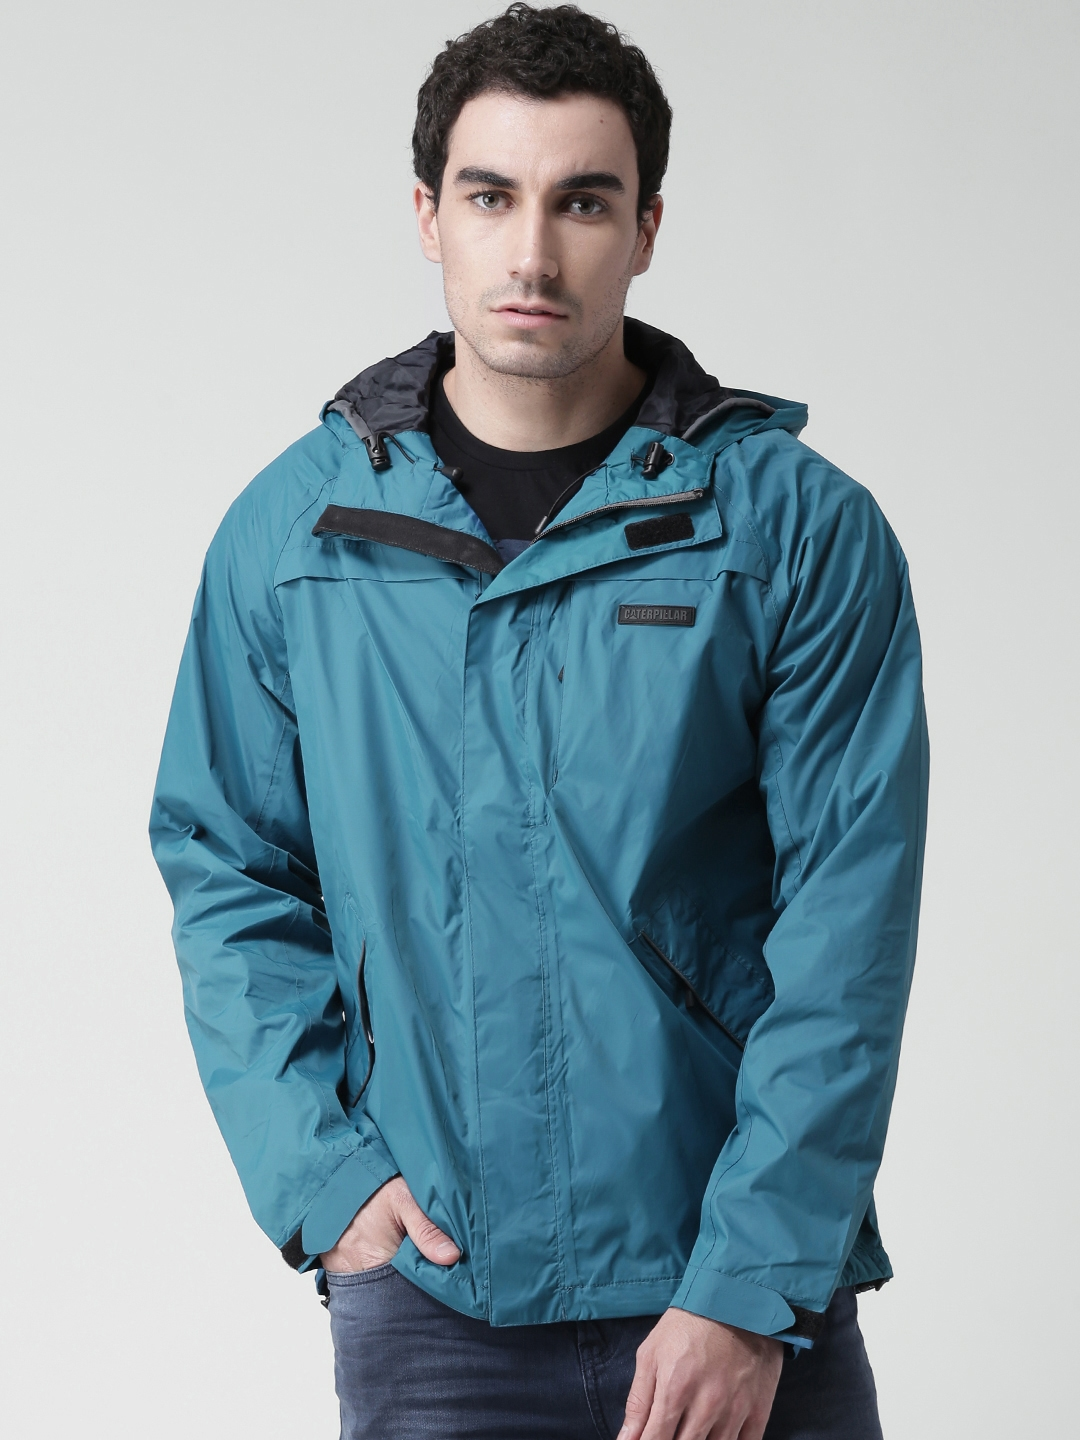 Cat Rain Jacket - Buy Cat Rain Jacket online in India